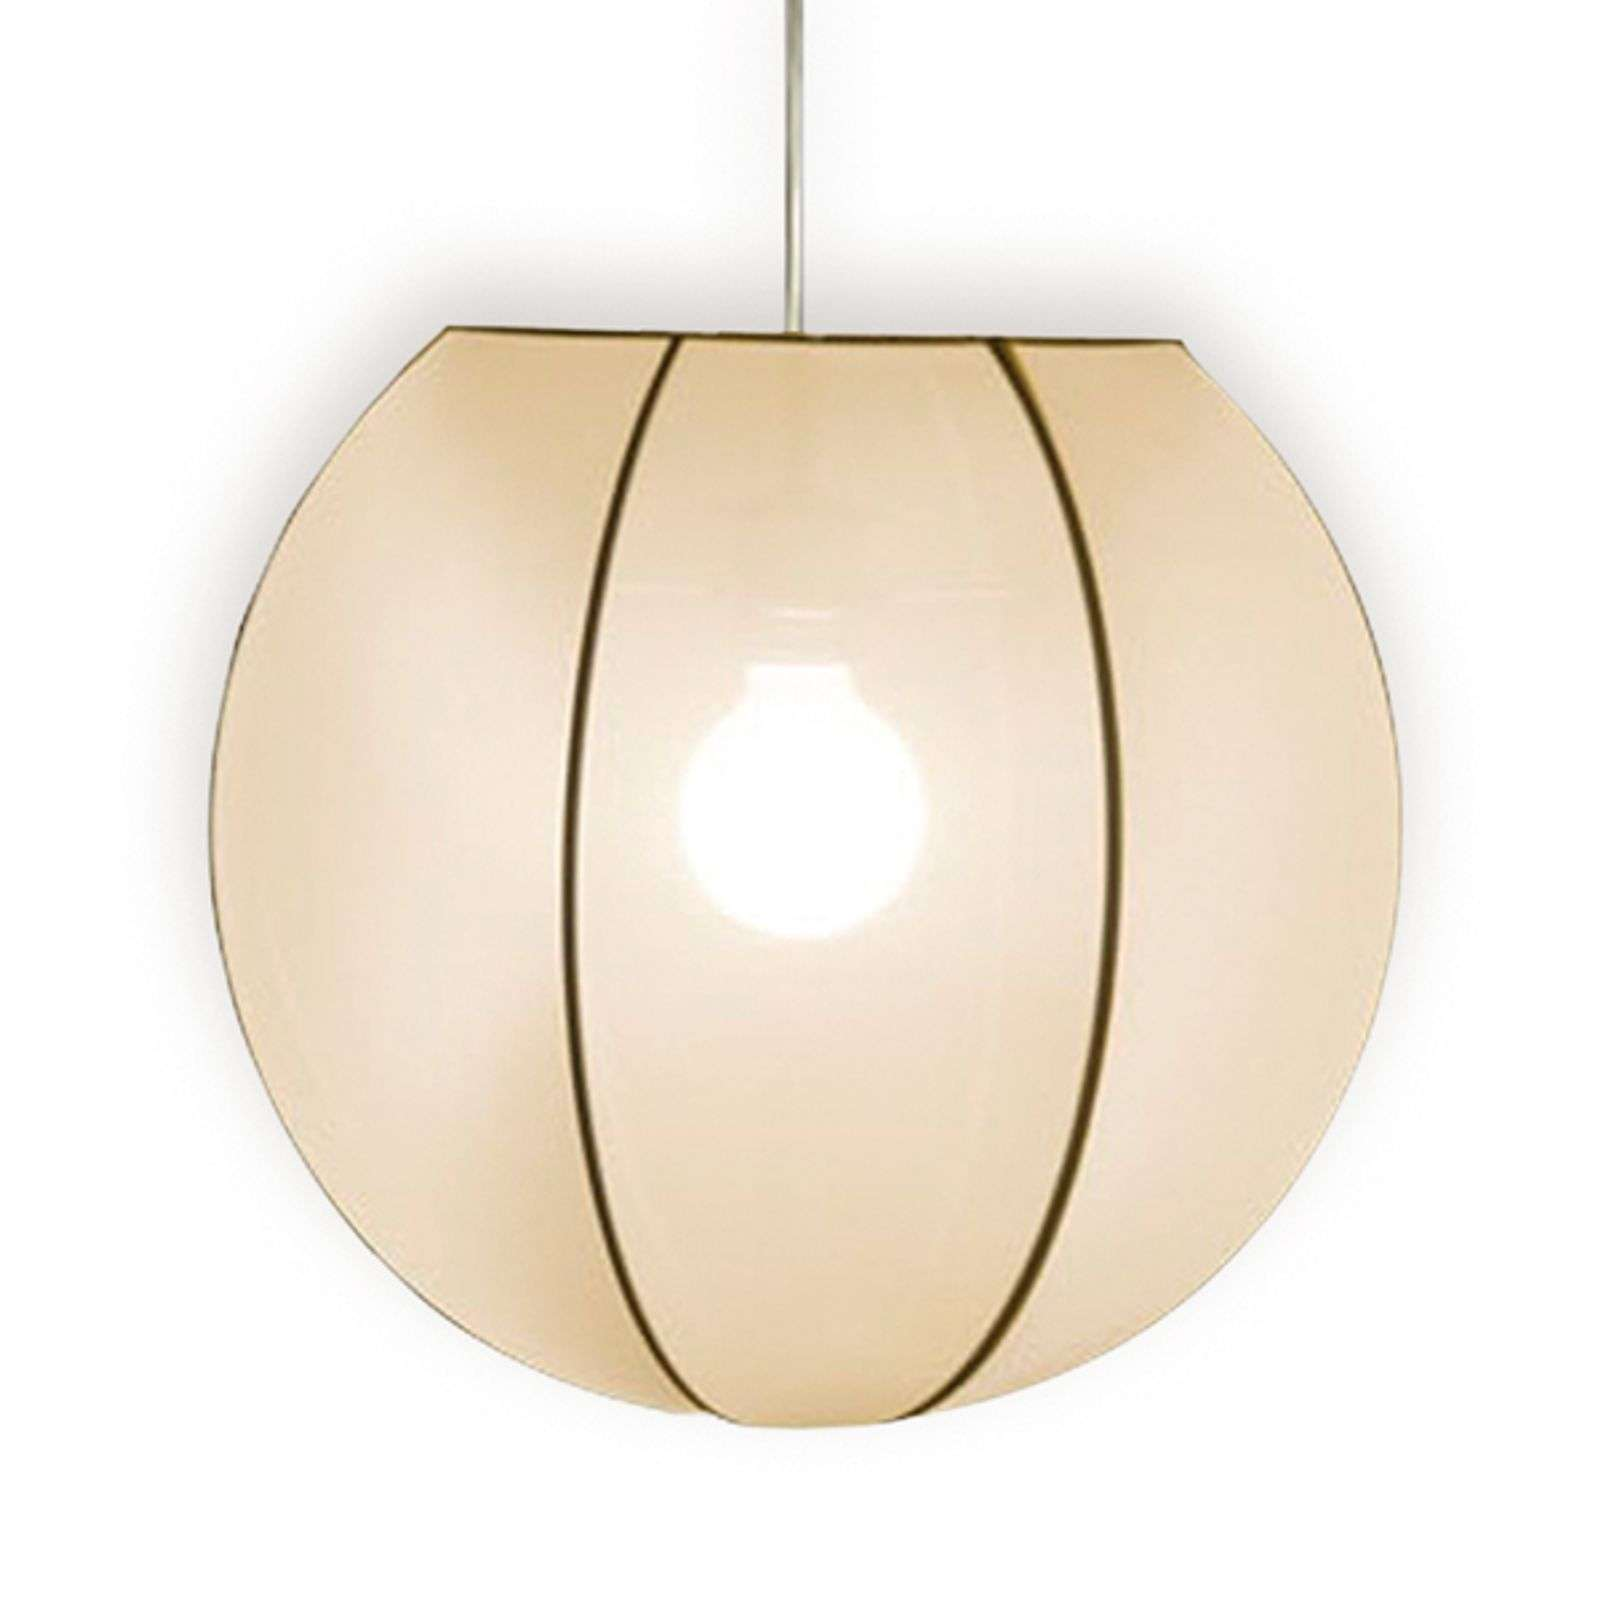 Belle suspension Kiano diamètre 50 cm